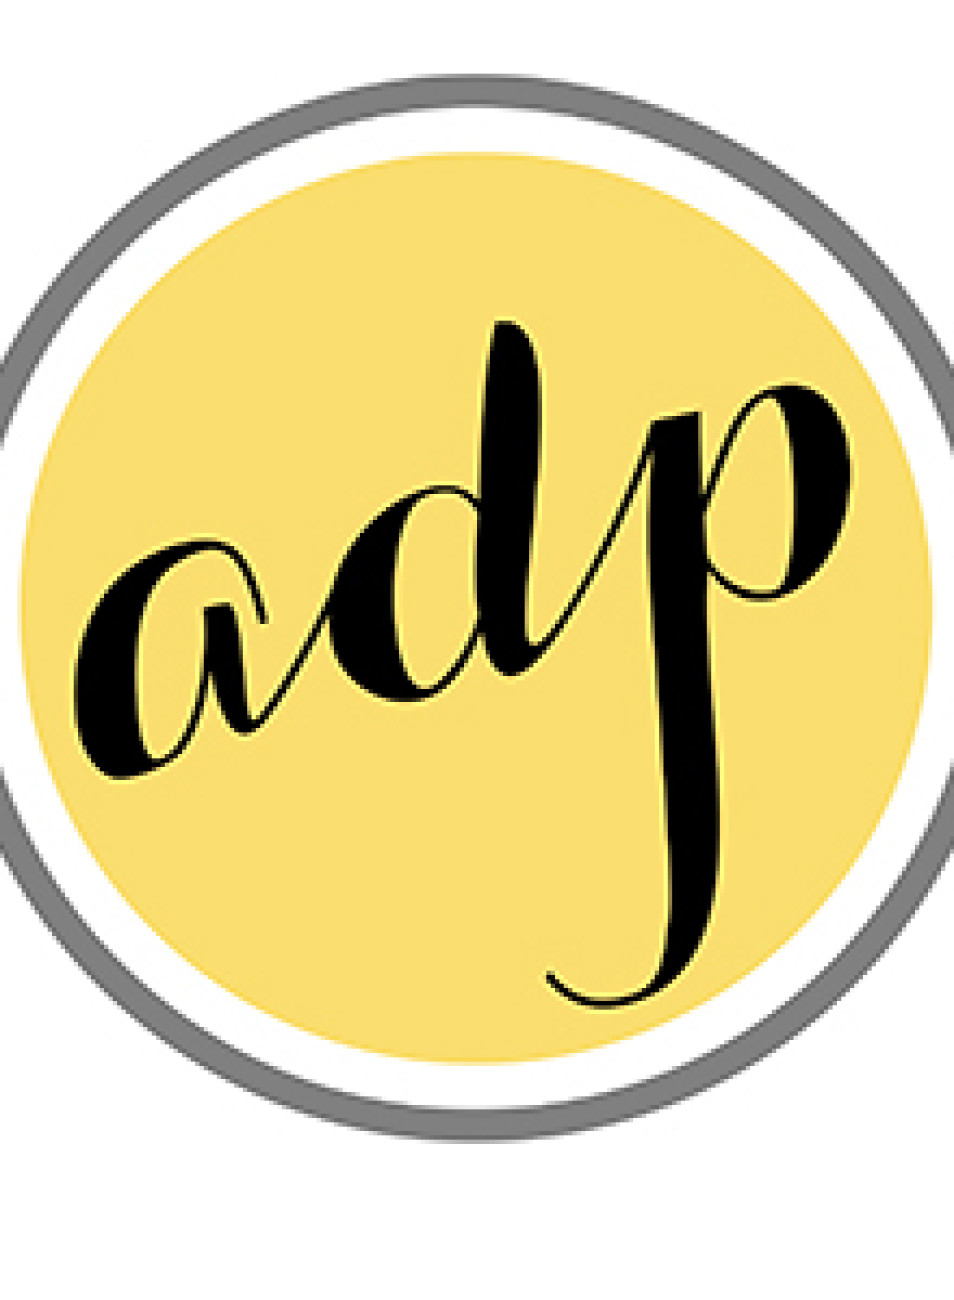 cropped-adp_circle_LOGO_2200x3001.jpg